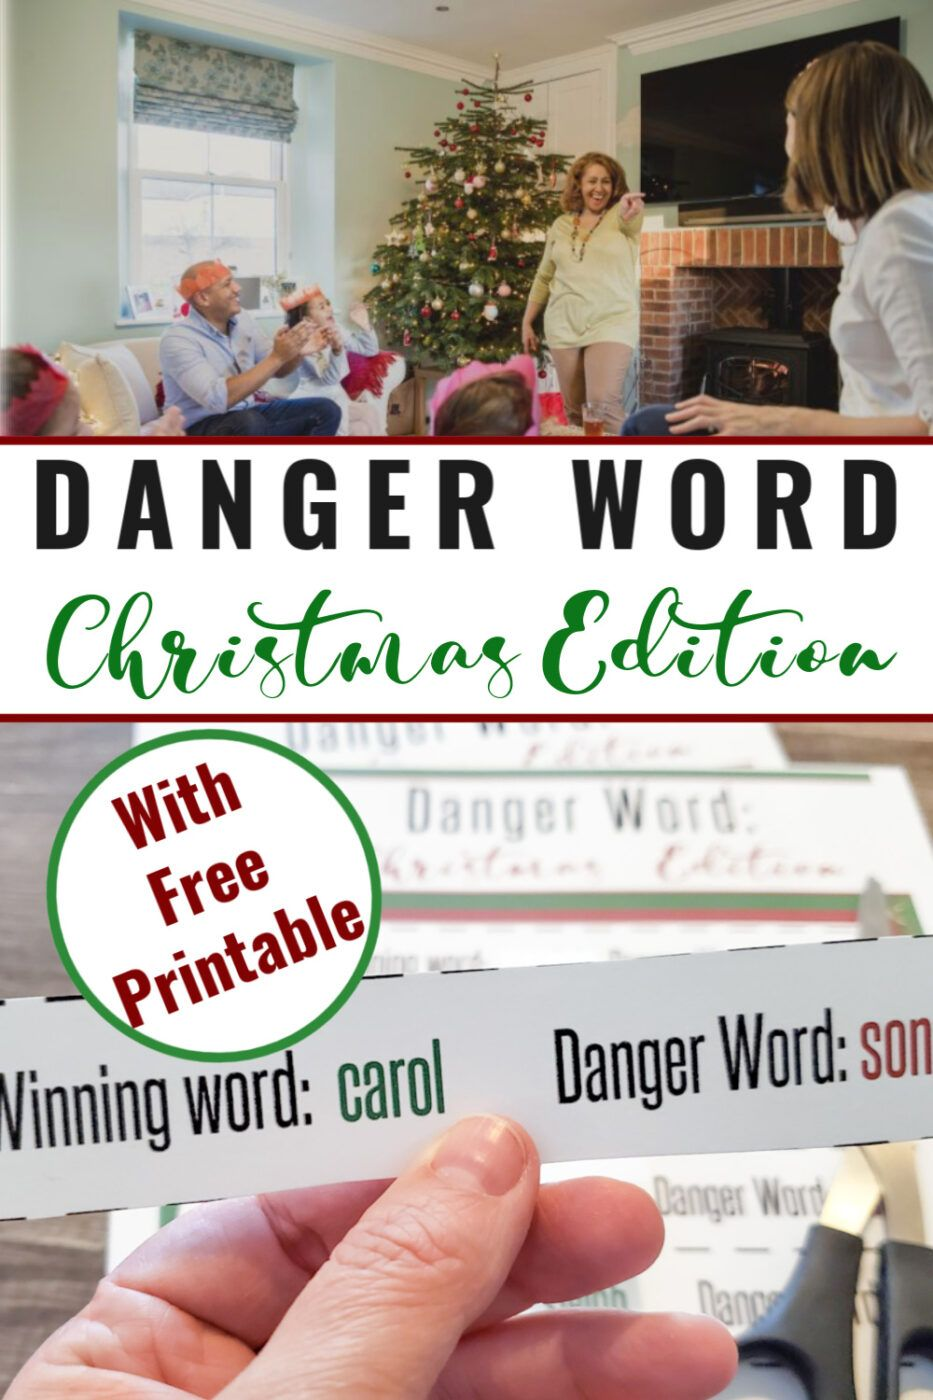 Danger Word Christmas Edition Free Printable With Images